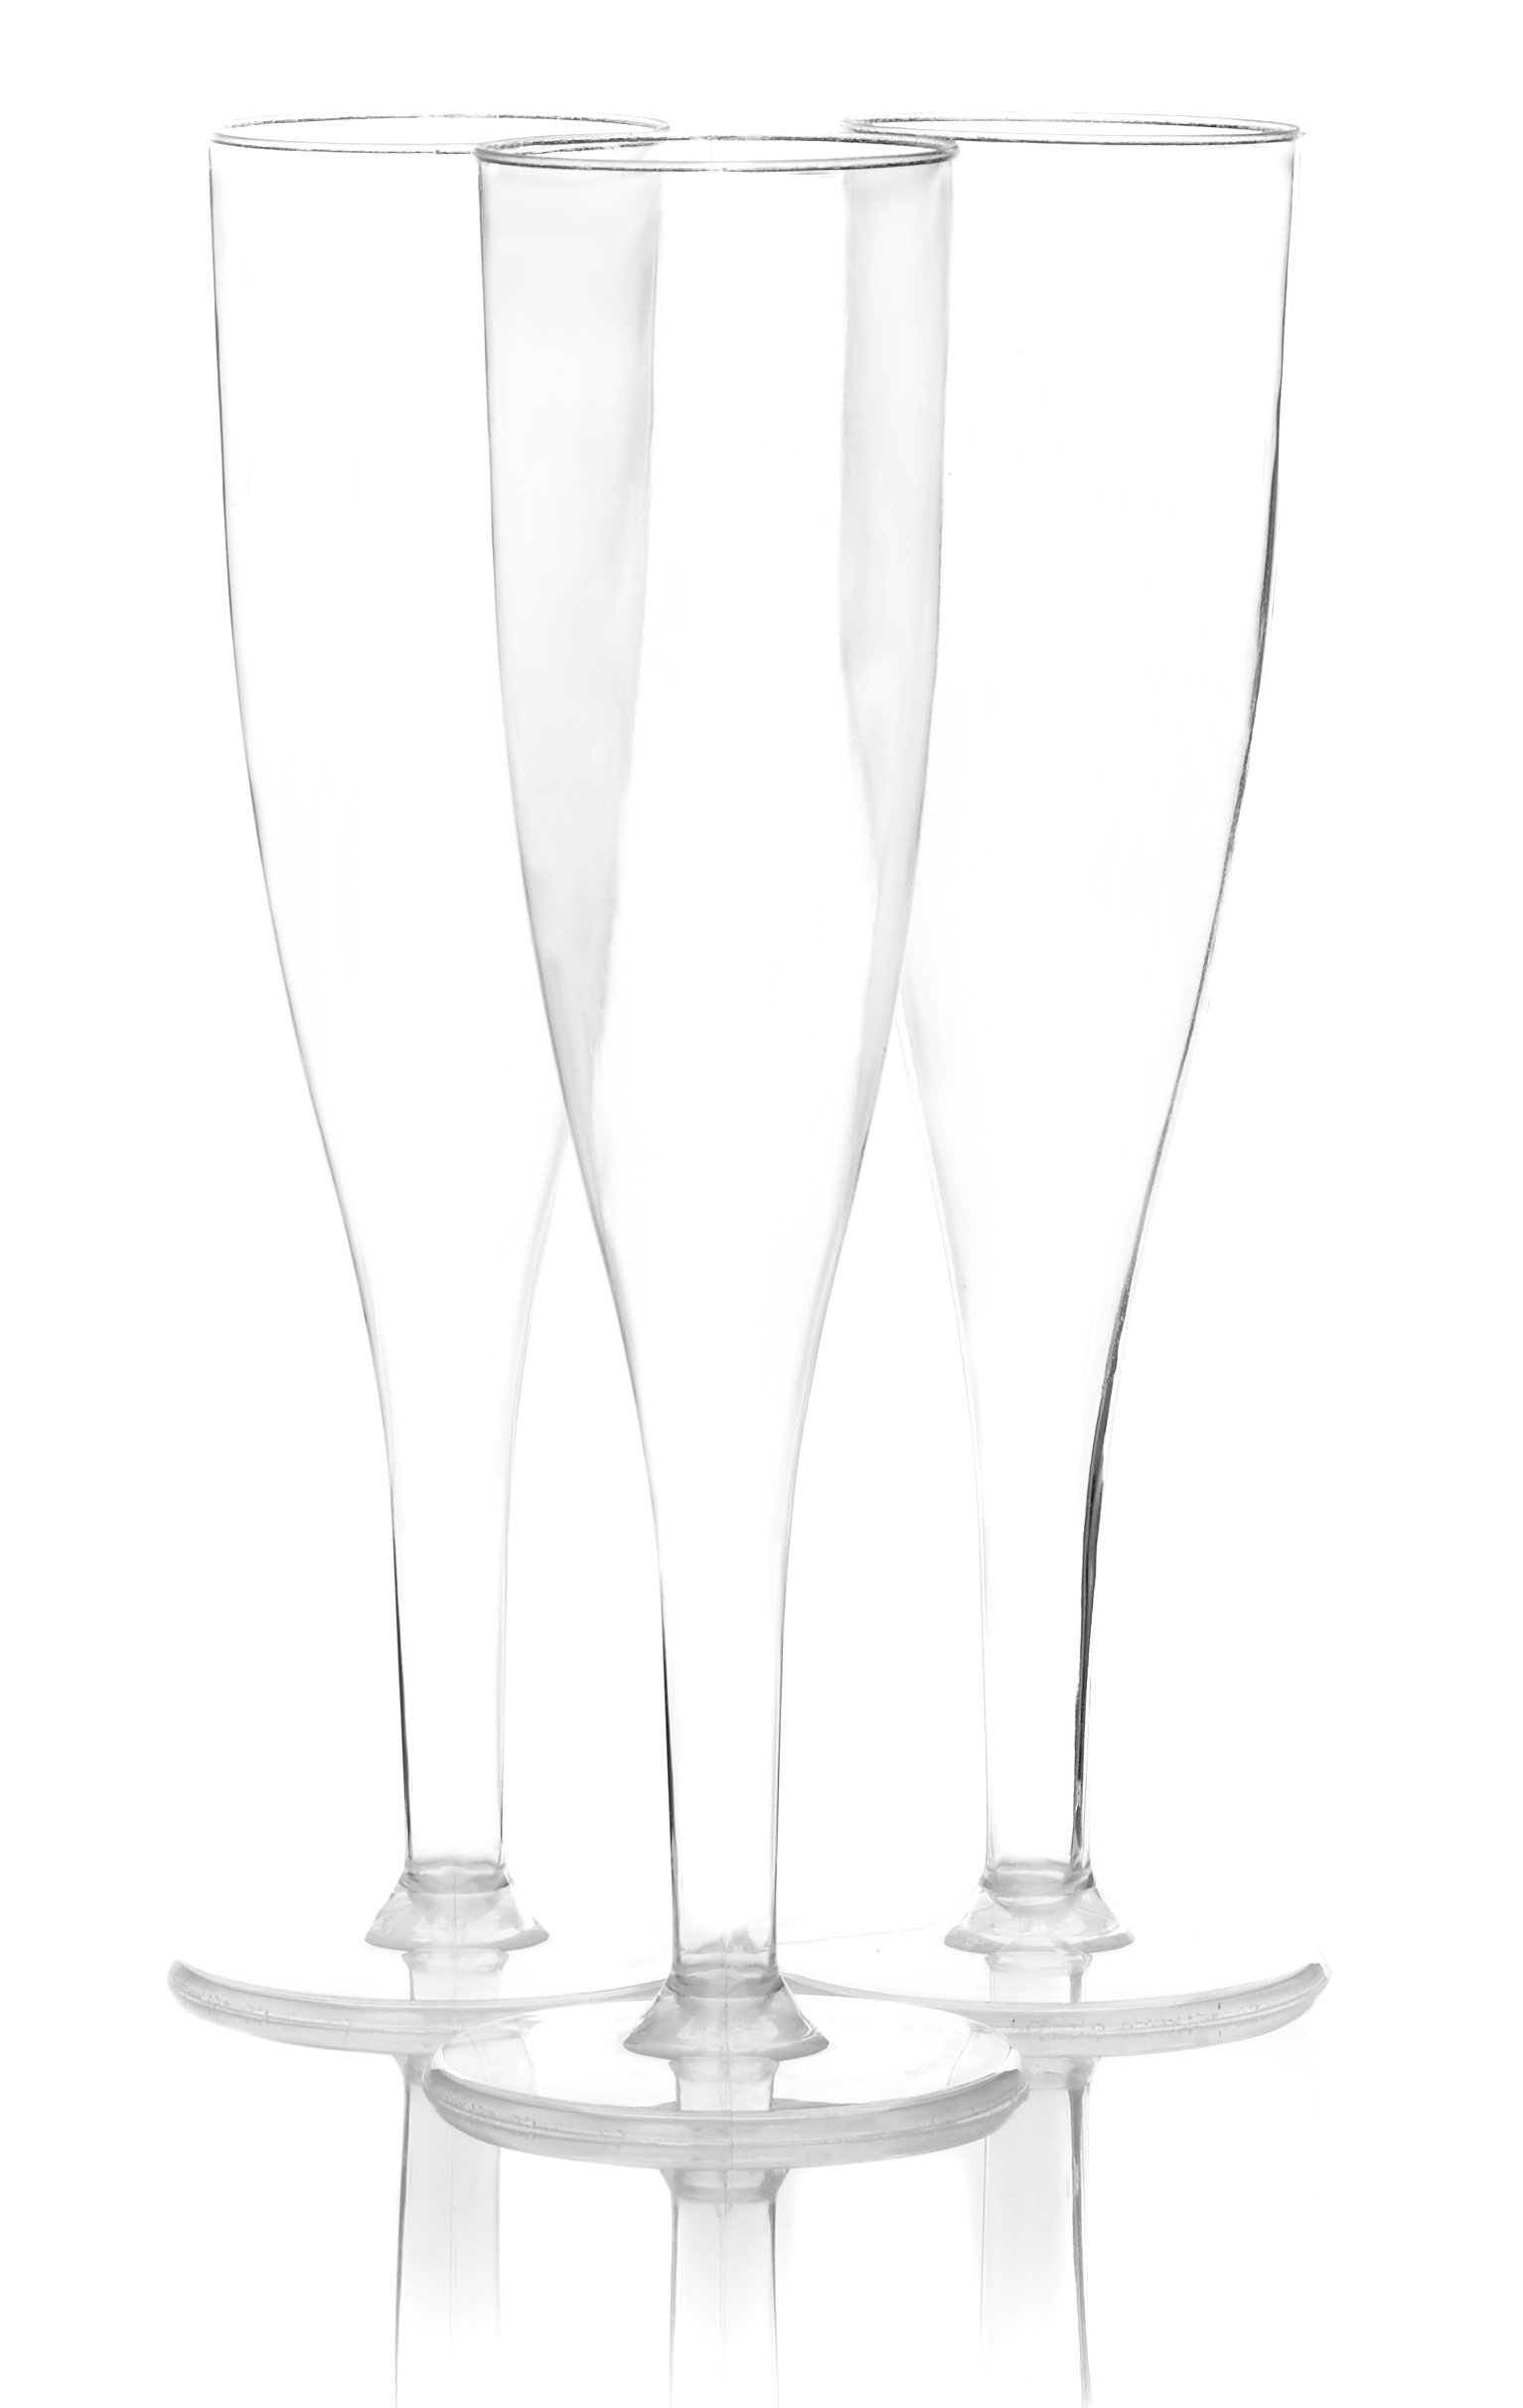 Party Essentials Hard Plastic 1-Piece Champagne Flute, 5-Ounce Capacity, Clear (Case of 60) by Party Essentials